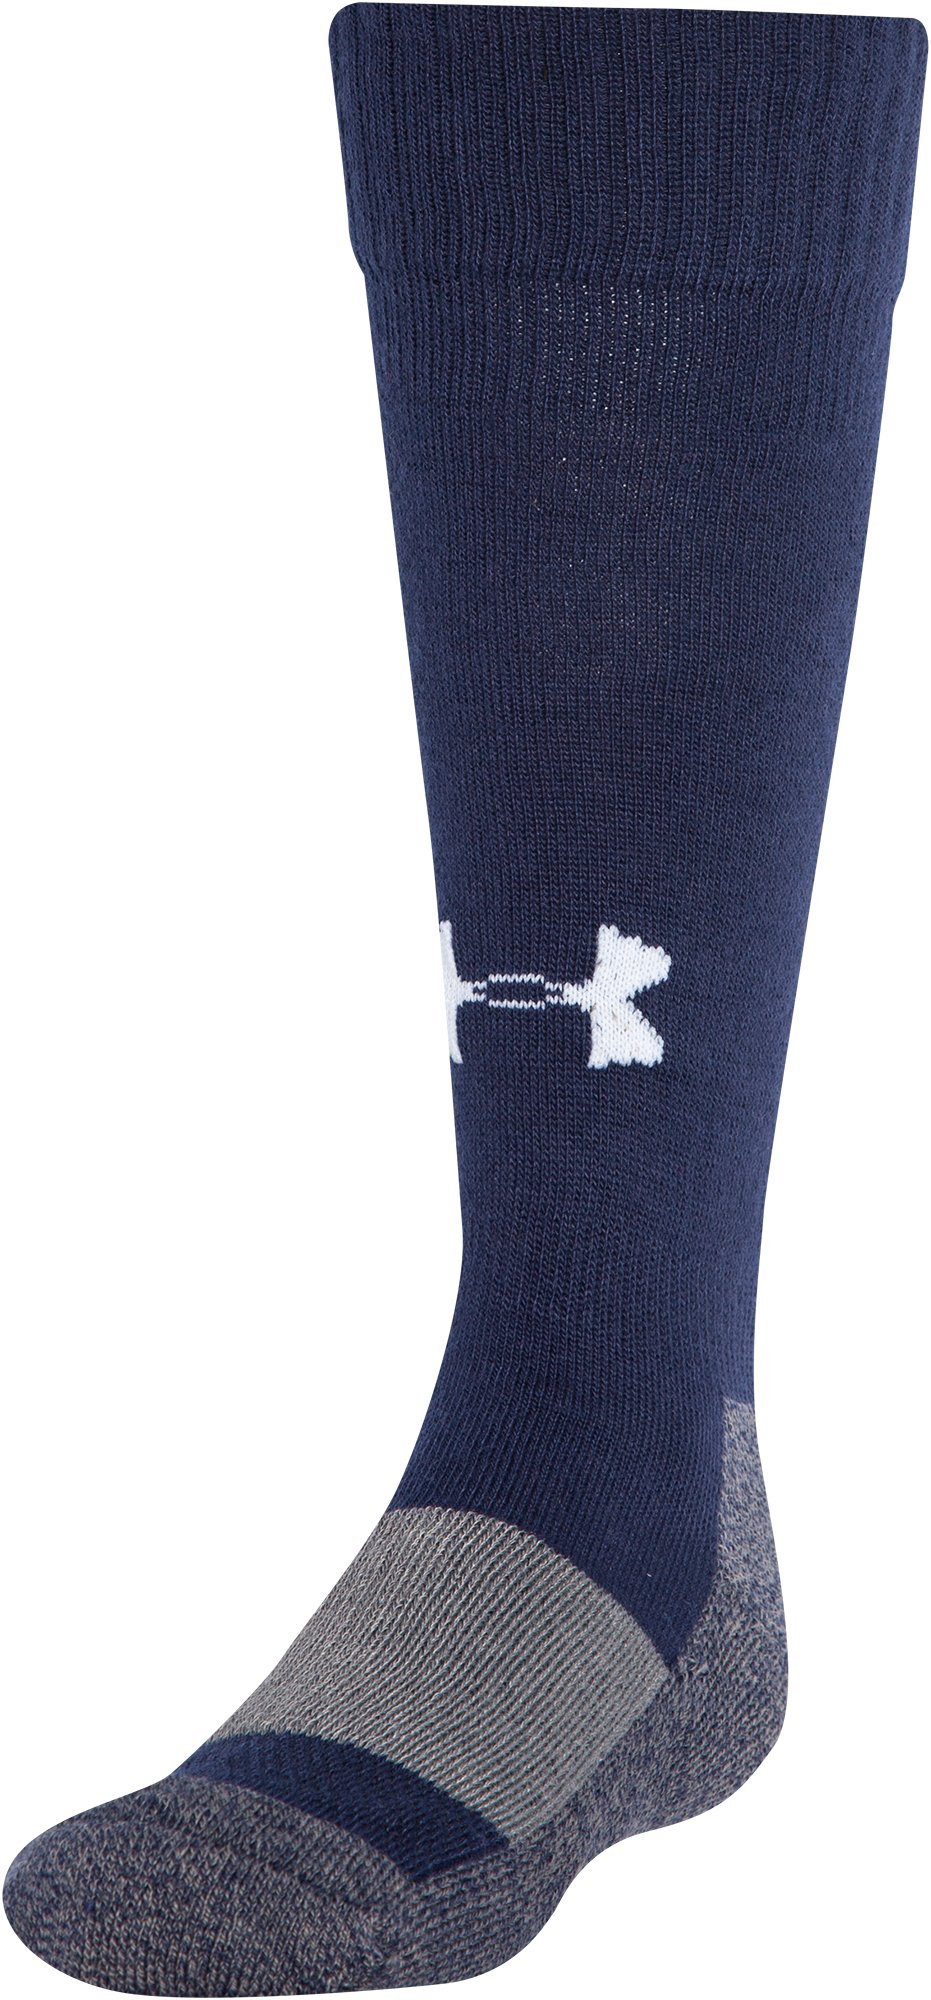 Boys' UA Baseball OTC Socks, Midnight Navy